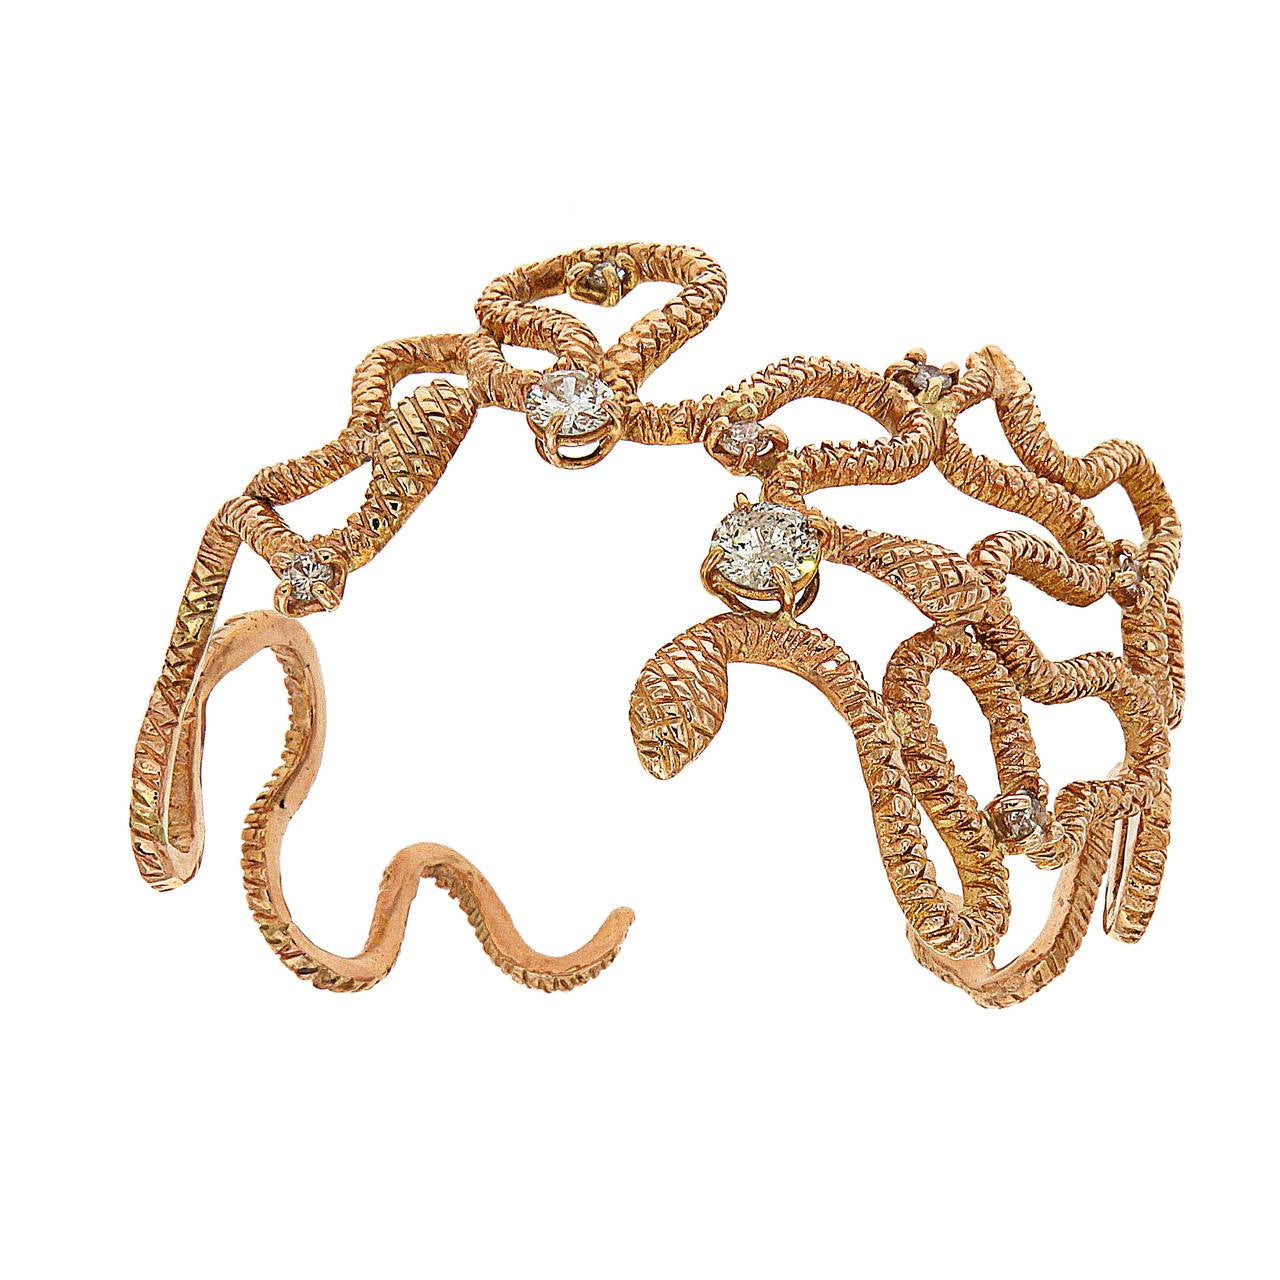 Brilliant Cut Diamonds 18 Karat Rose Gold Cuff Bracelet Handcrafted In Italy  For Sale